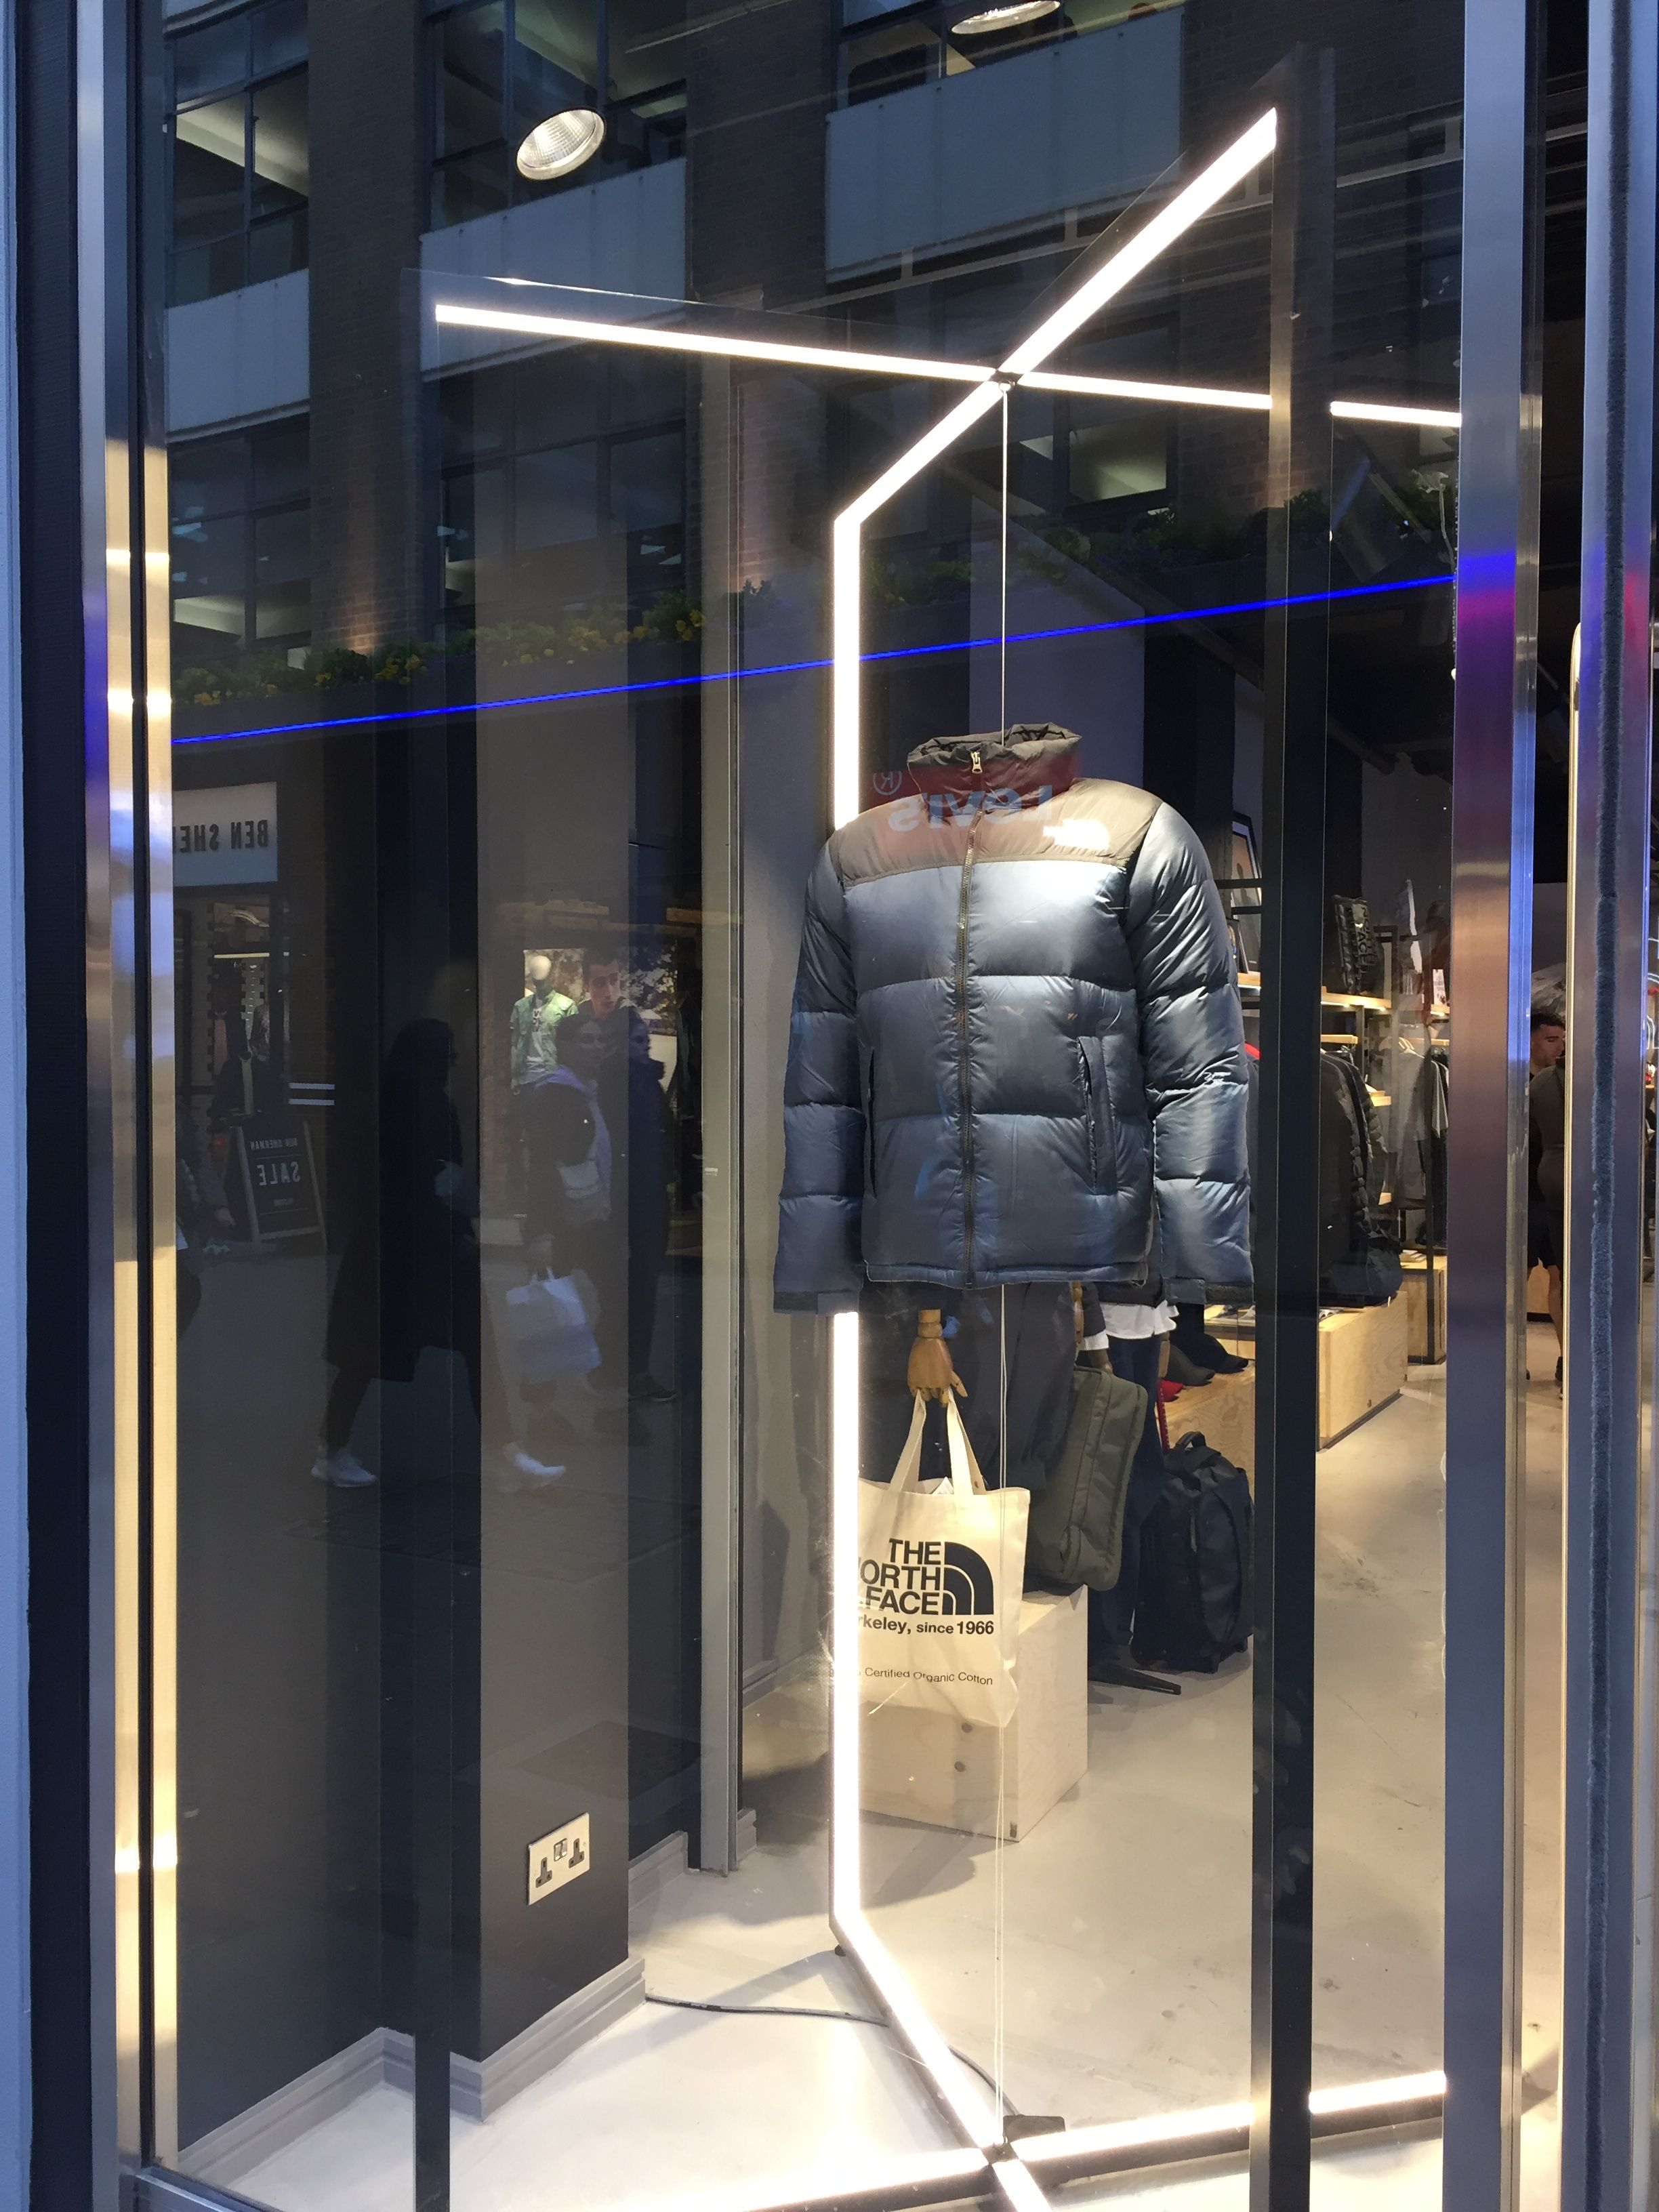 ac310005dc285 The North Face store - Carnaby Street, London | Exhibition & Museum ...